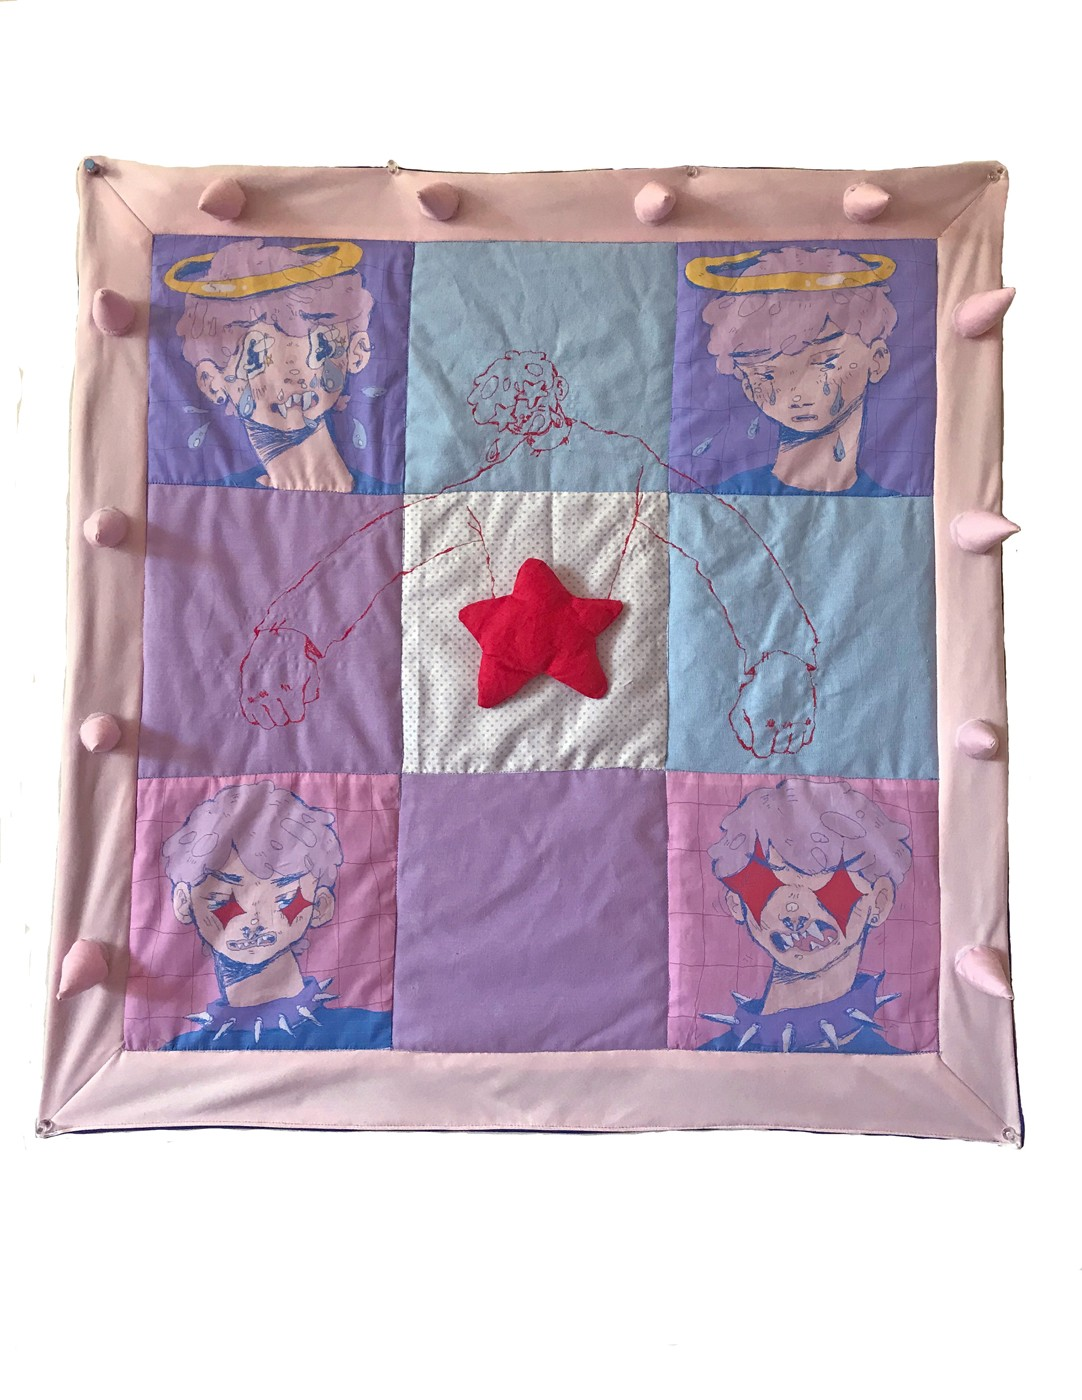 Quilted squares surrounded by a border of soft-sculpture spikes. In the center is a 3-dimensional red star surrounded by four printed faces depicting various stages of emotional distress.